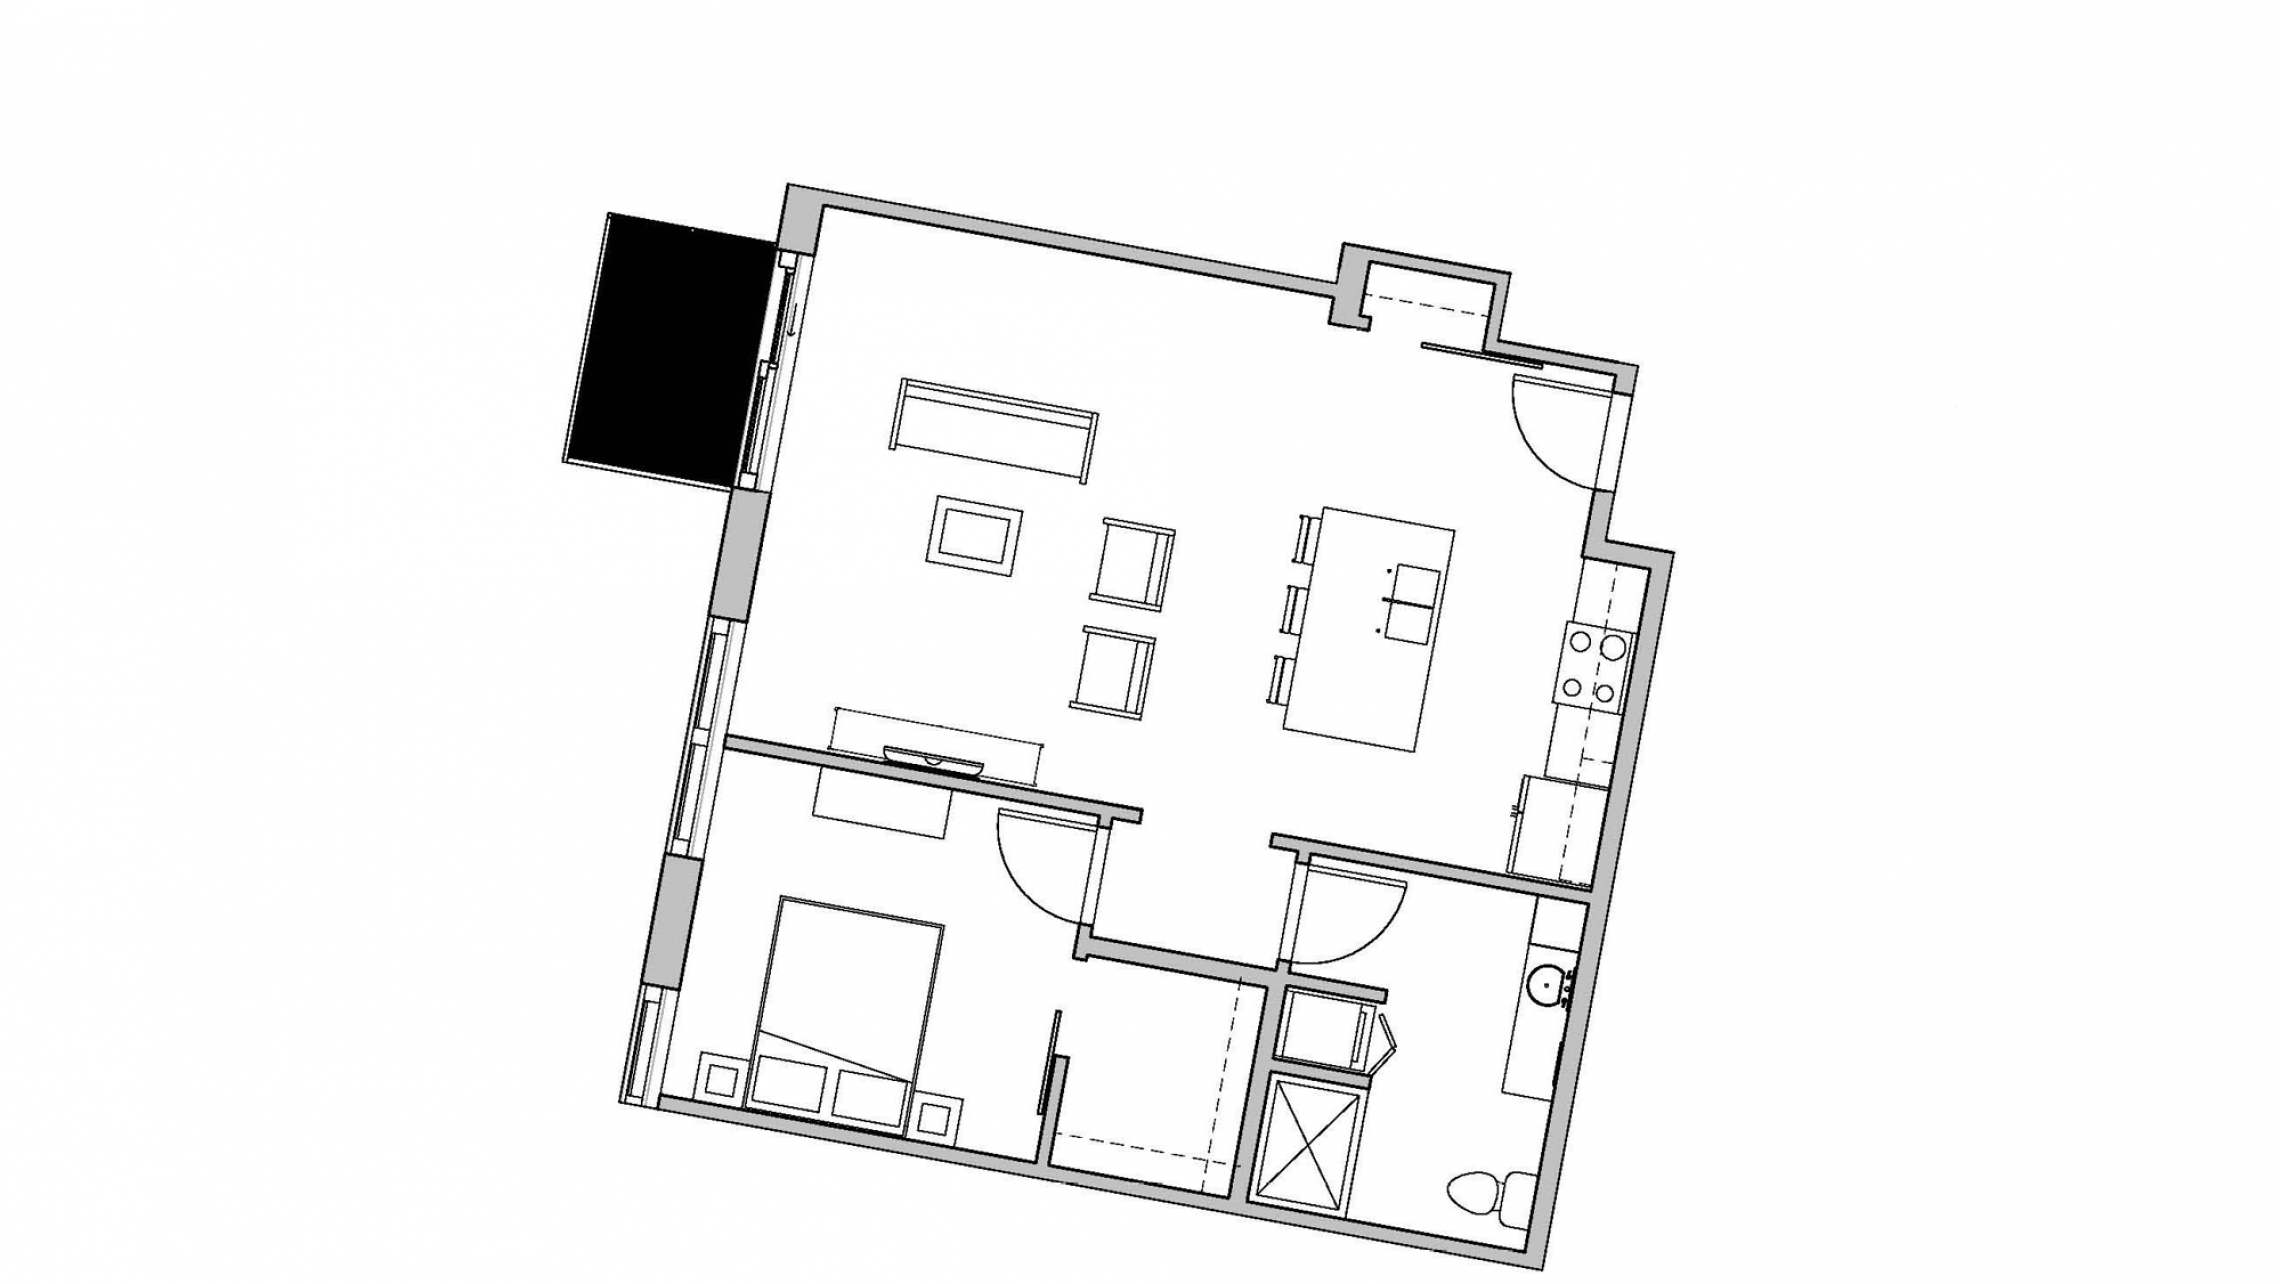 ULI Seven27 432 - One Bedroom, One Bathroom